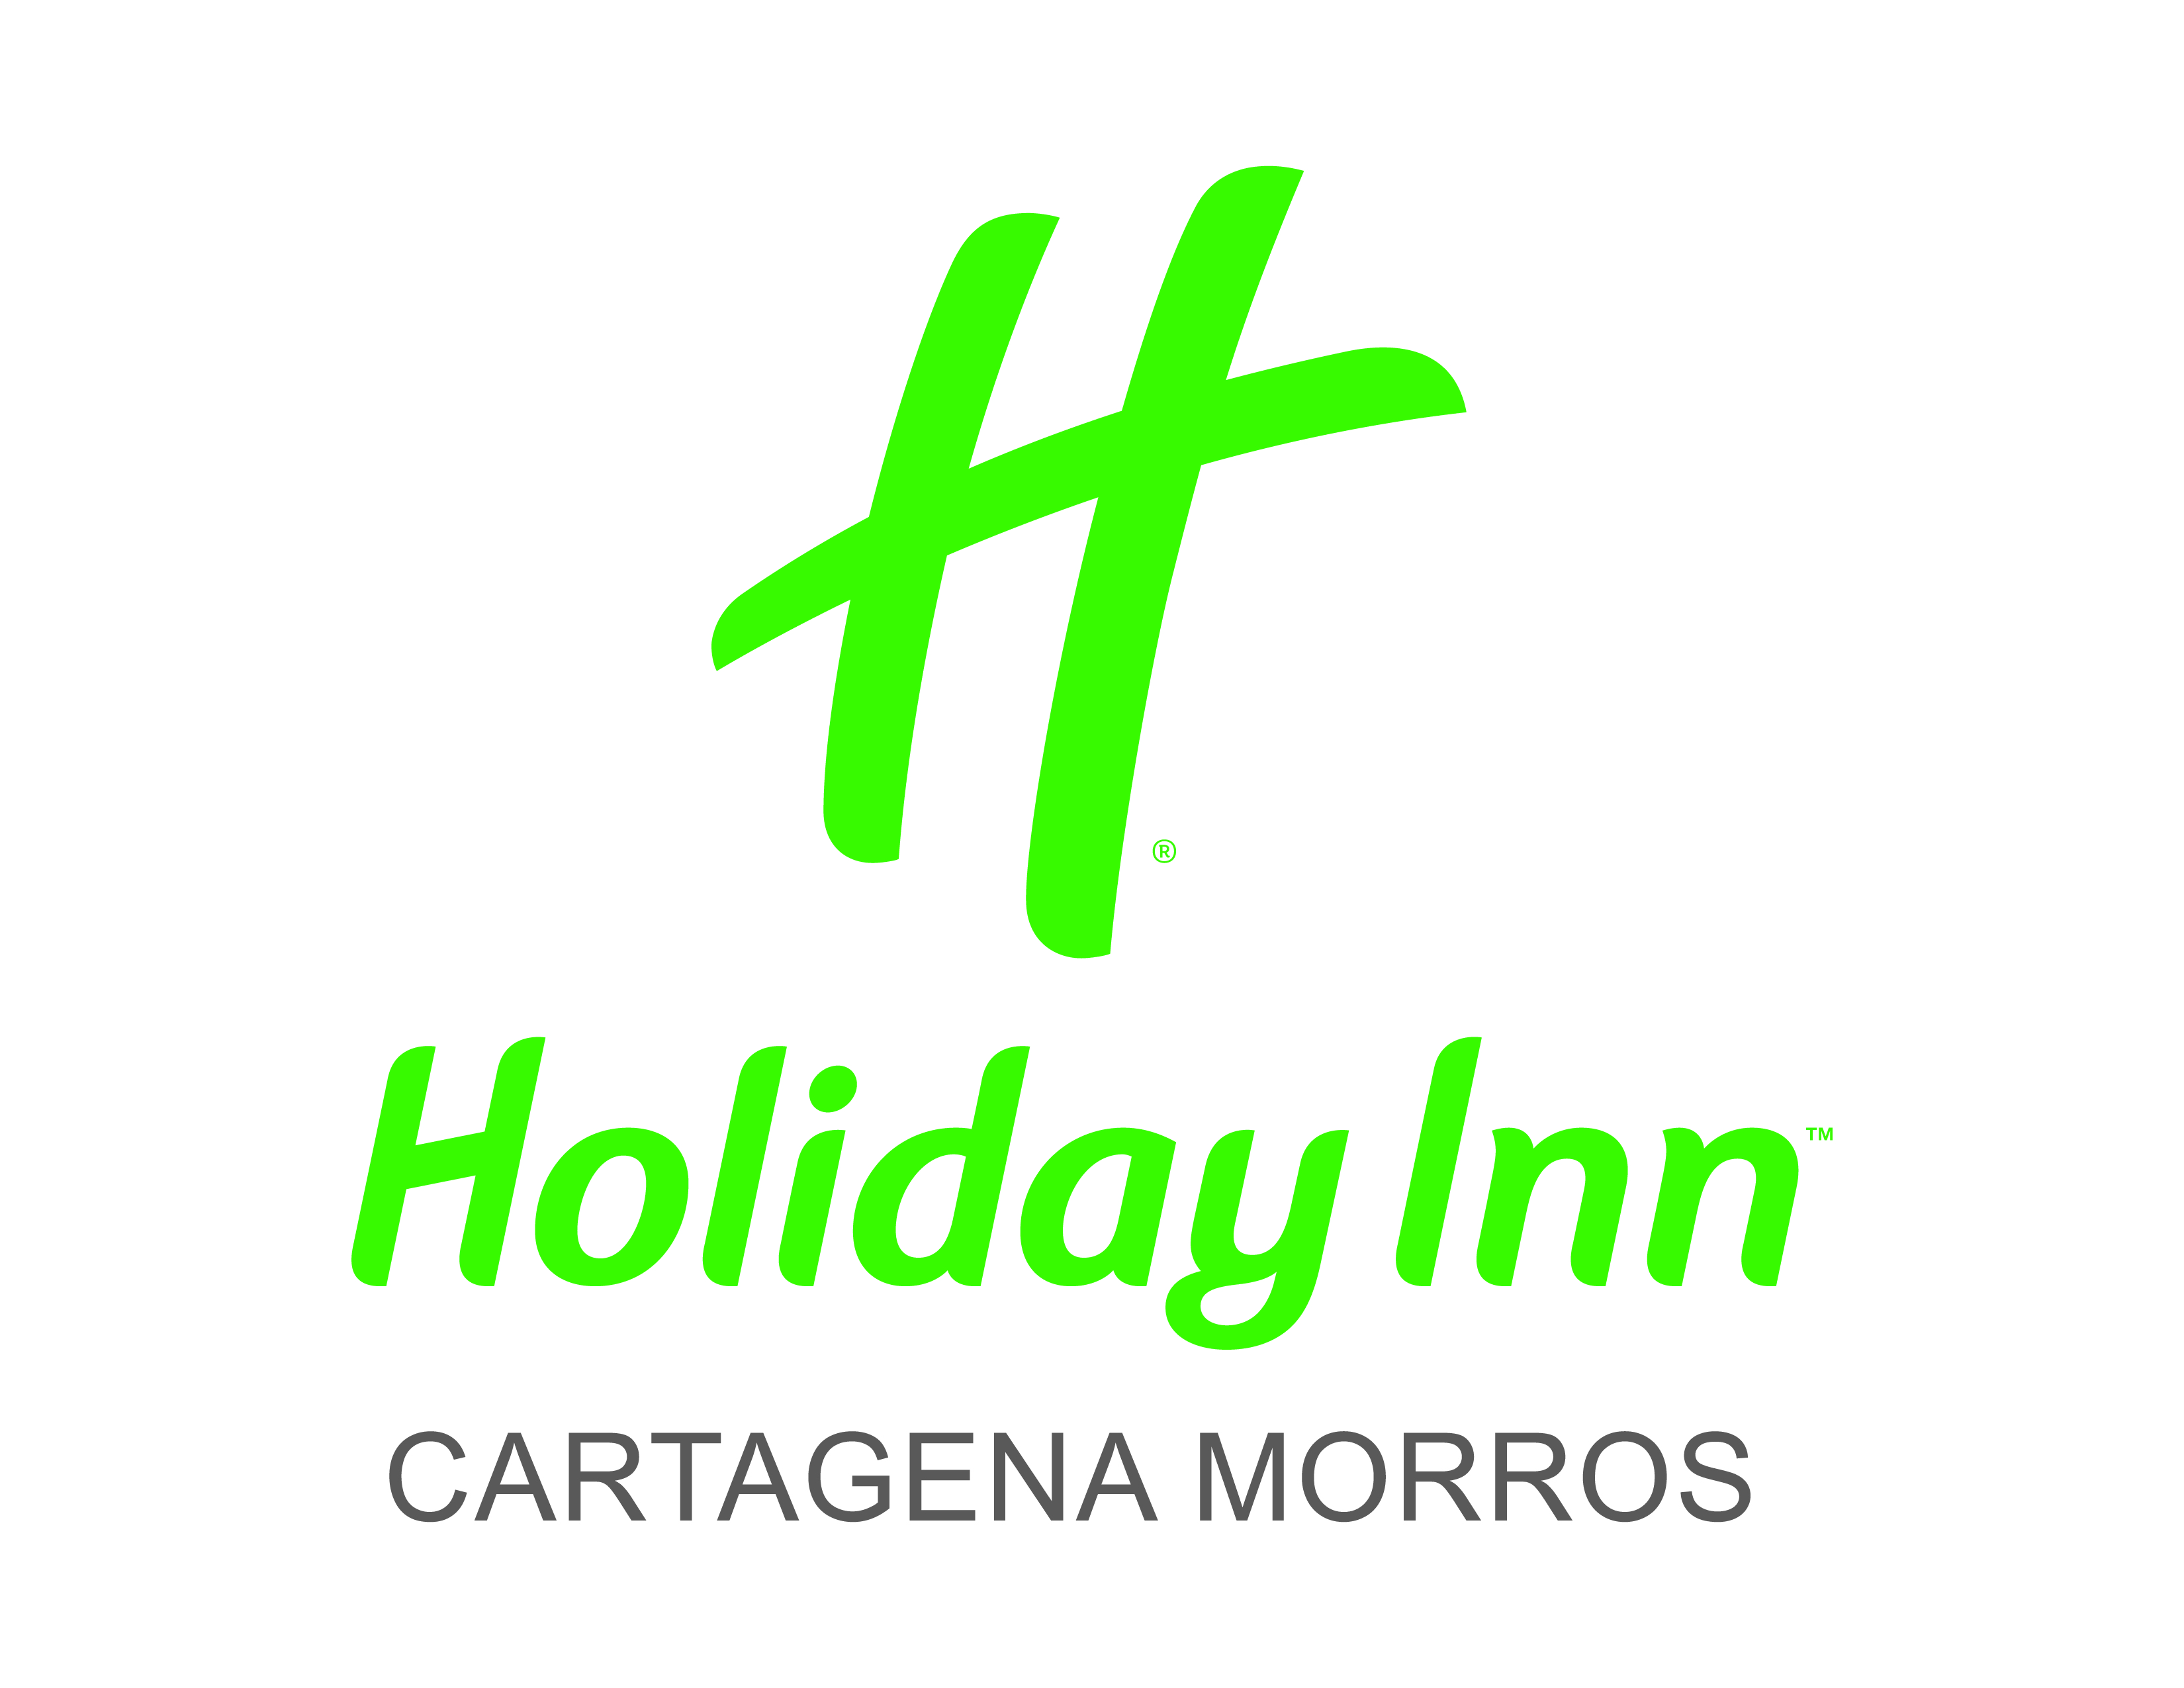 Hotel Holiday Inn Cartagena Morros